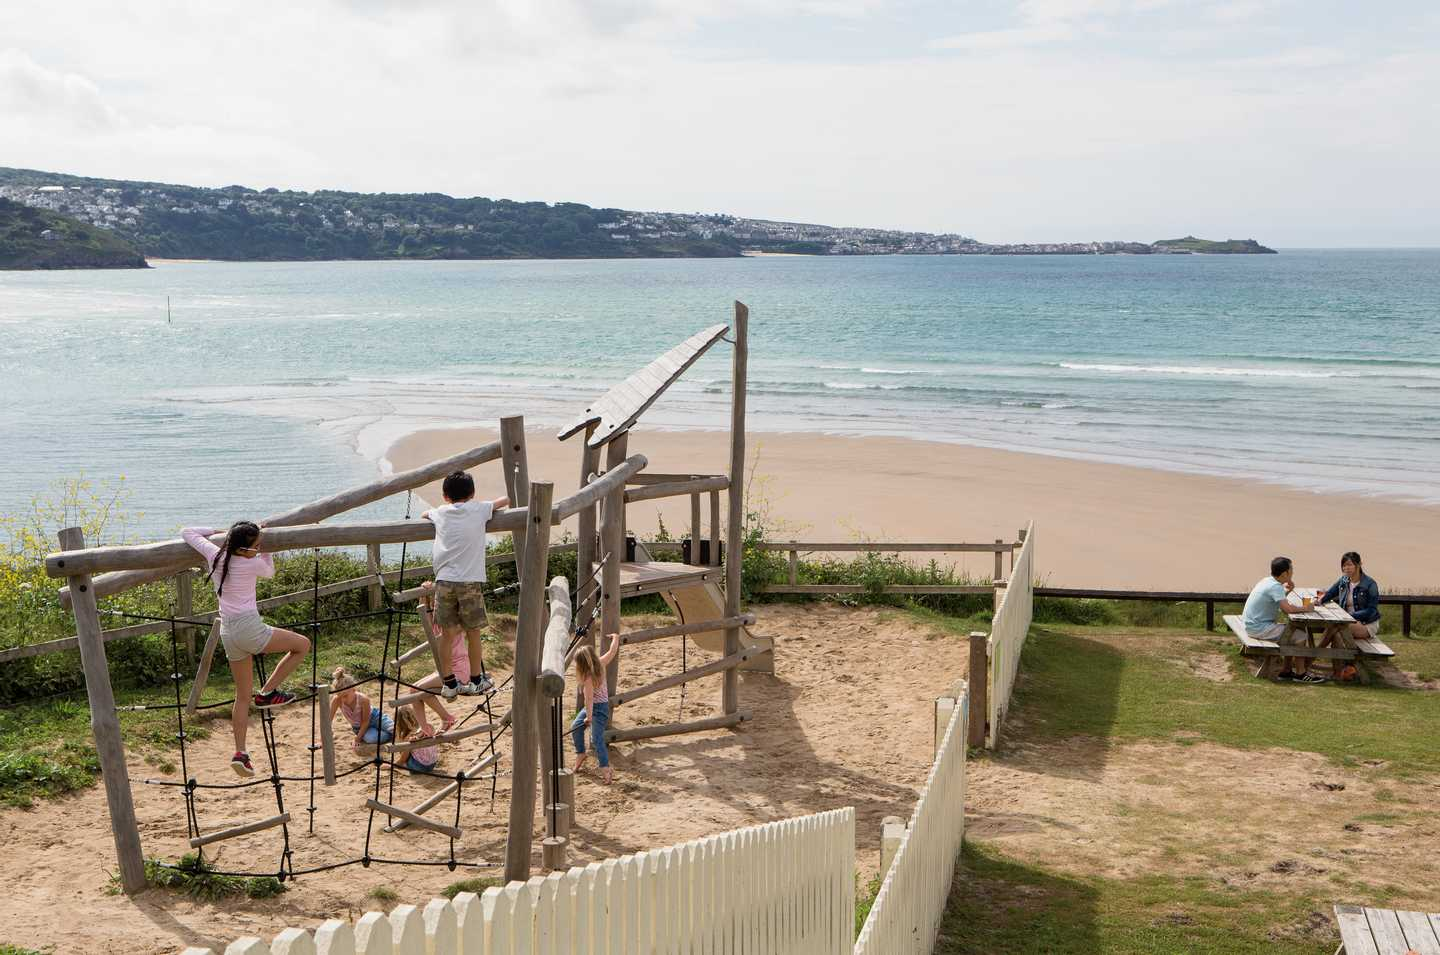 Children in the play area nearby the Bluff Inn restaurant